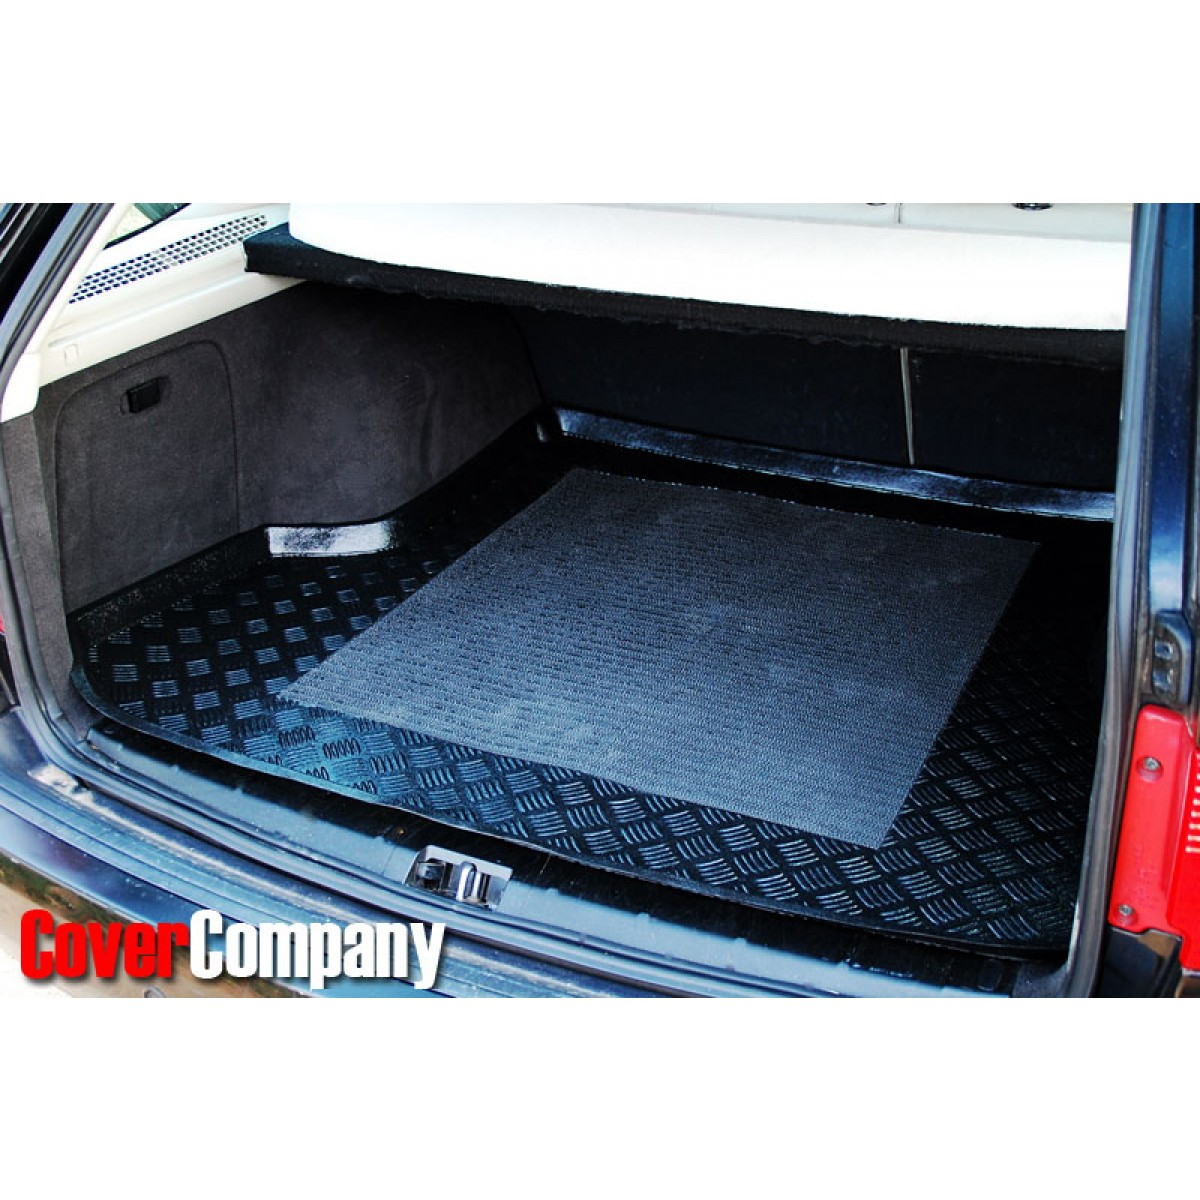 tapis coffre voiture sur mesure bienvenue sur cover company. Black Bedroom Furniture Sets. Home Design Ideas